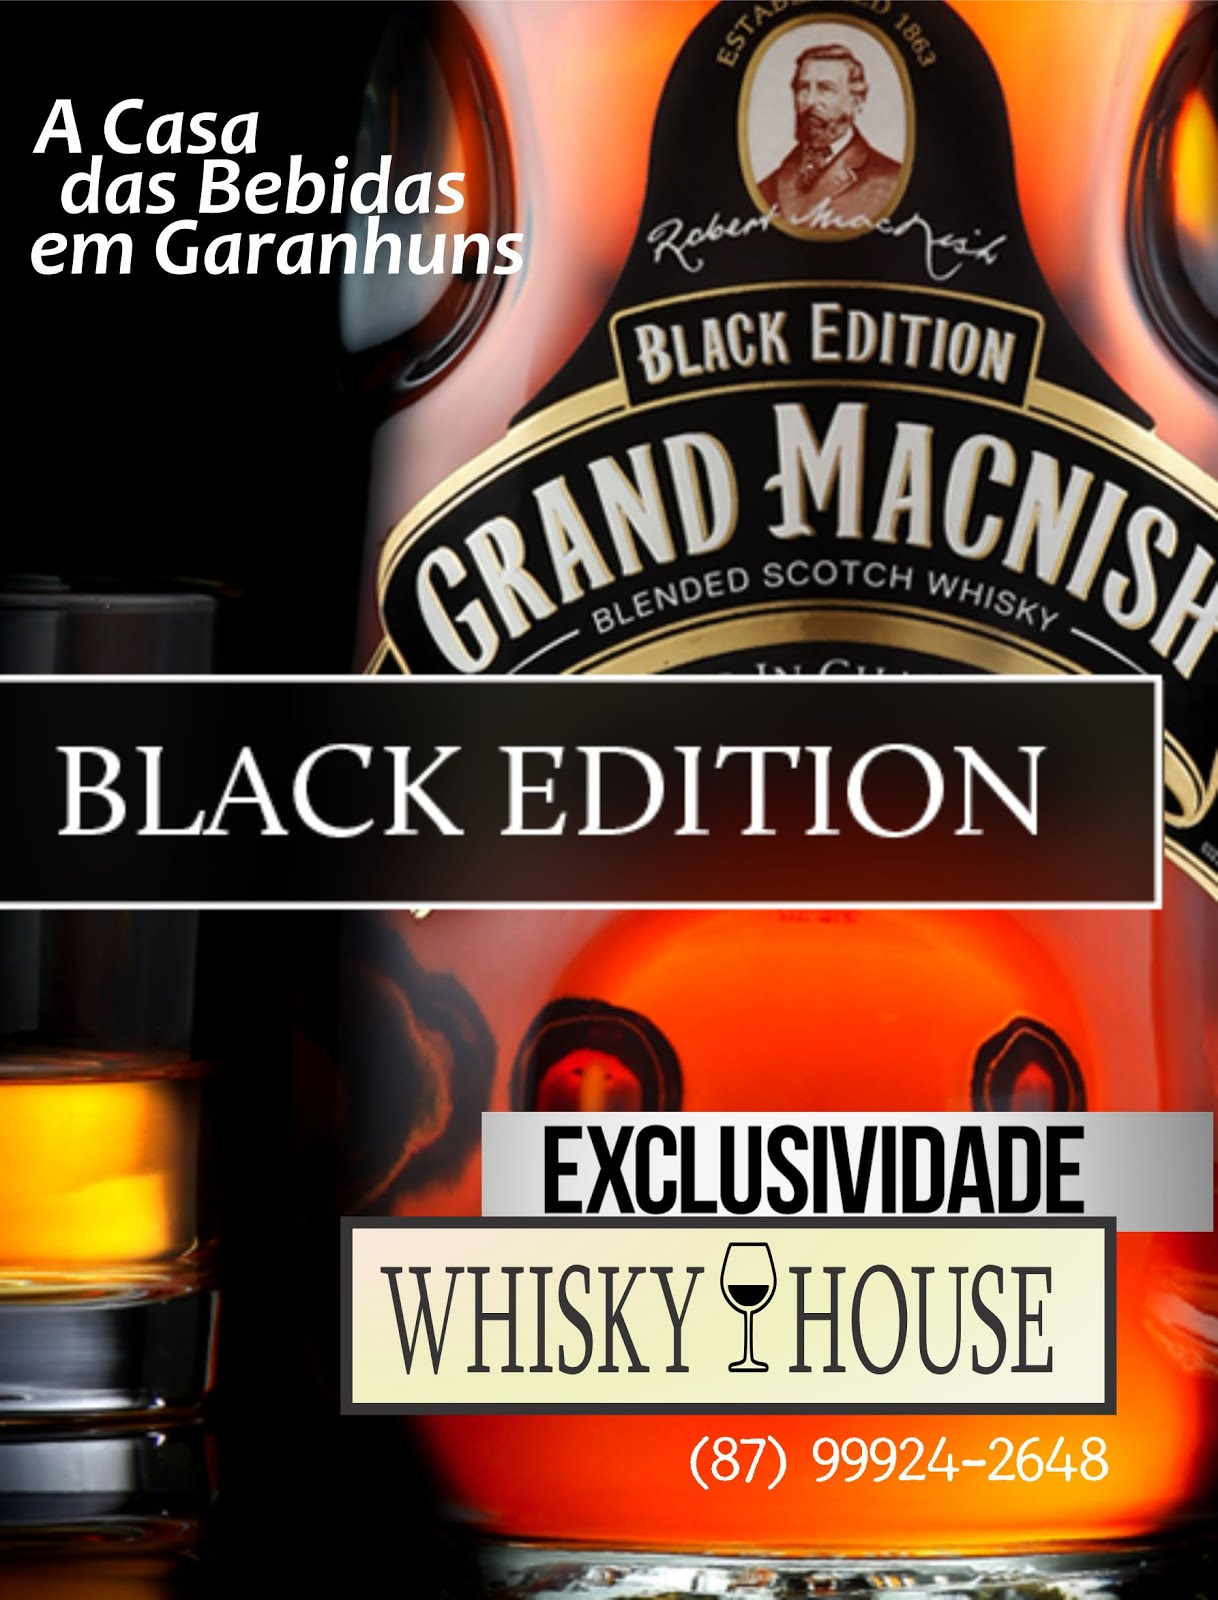 WHISKY HOUSE